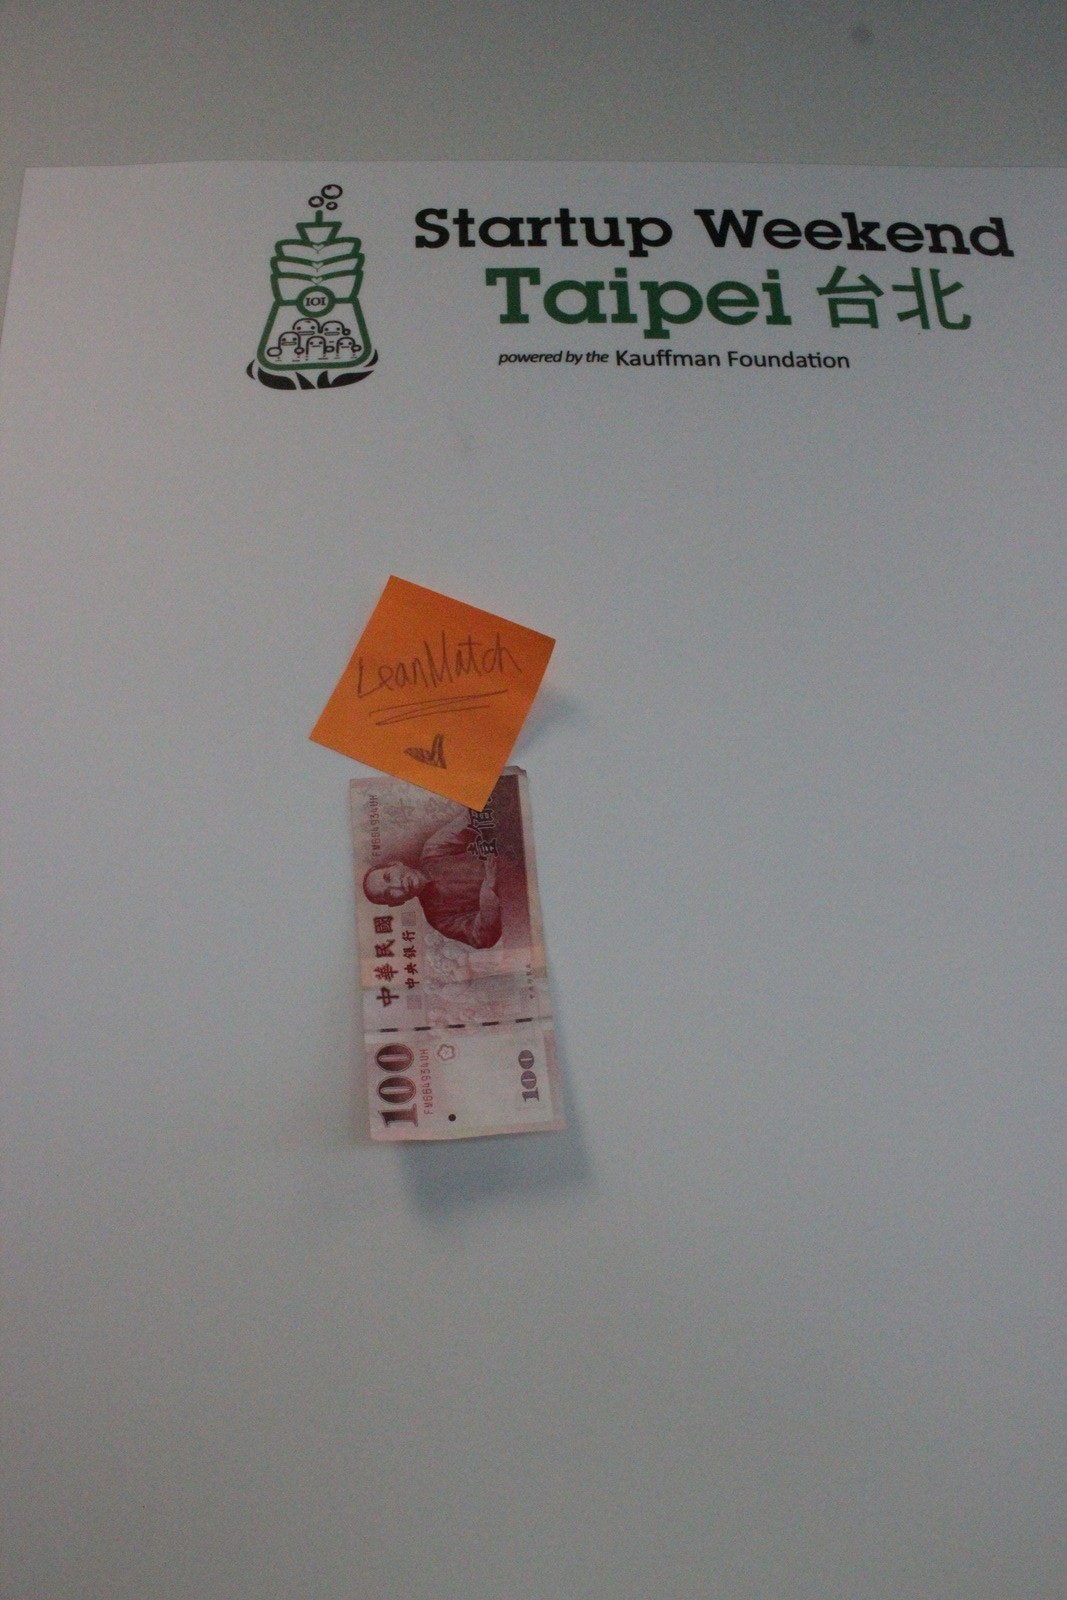 Another team posting 100TWD revenue at StartupWeekend Taipei